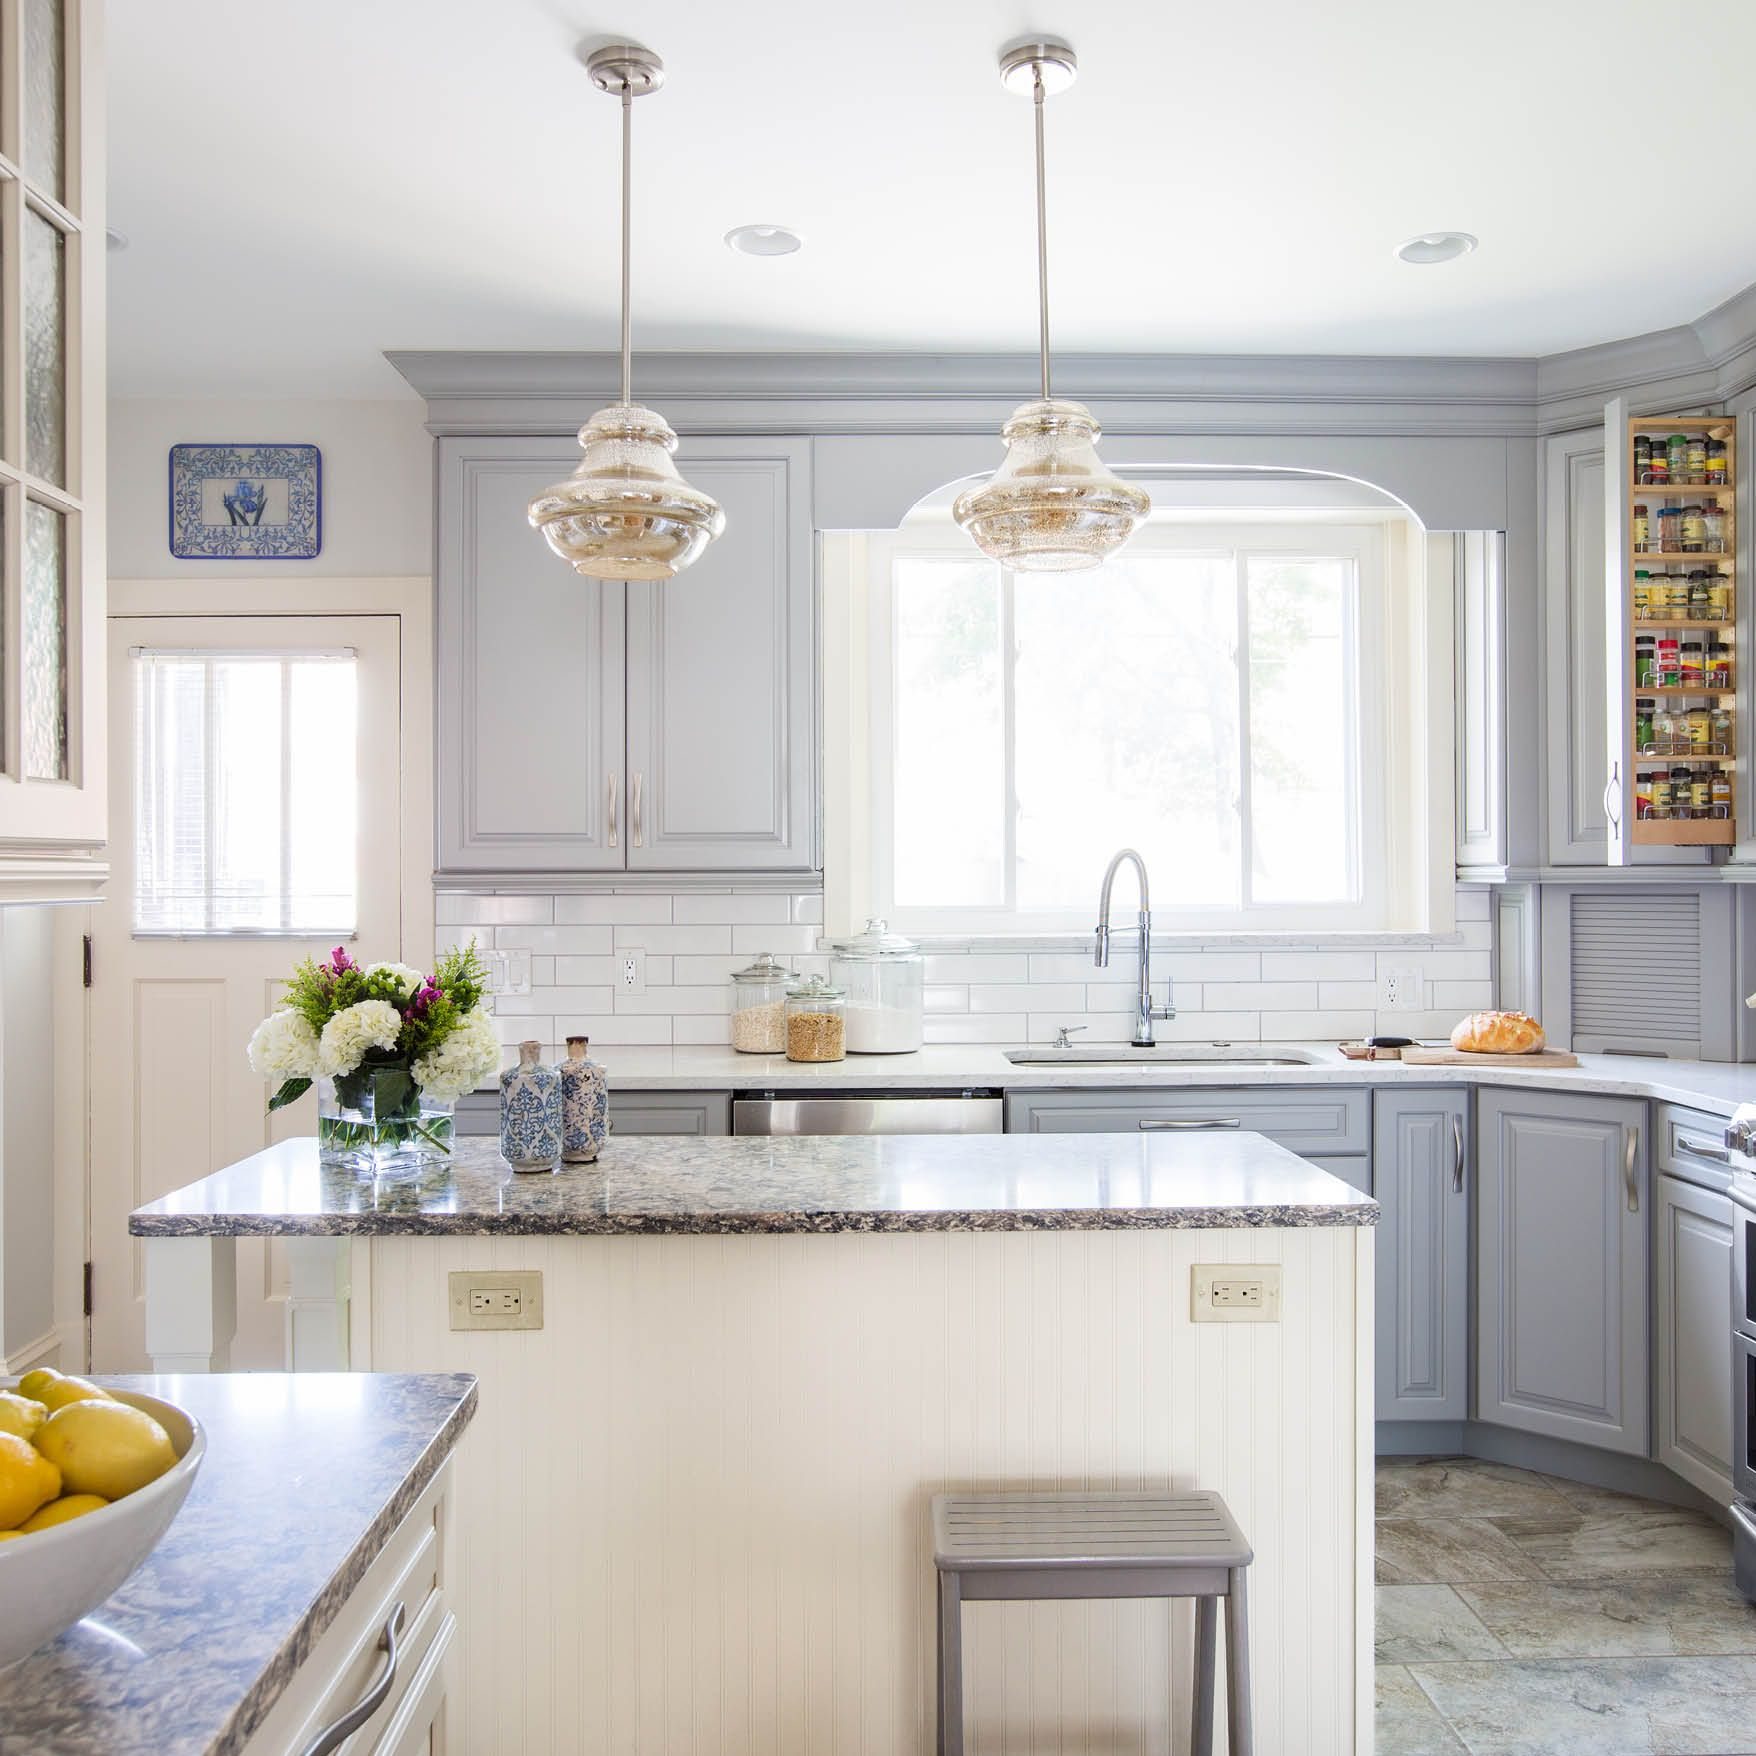 Rebekah Murphy Of Karr Bick Kitchen And Baths In St Louis Mo Turned Her Dated Kitchen Into A Dre Kitchen And Bath Remodeling Kitchen And Bath Kitchen Remodel